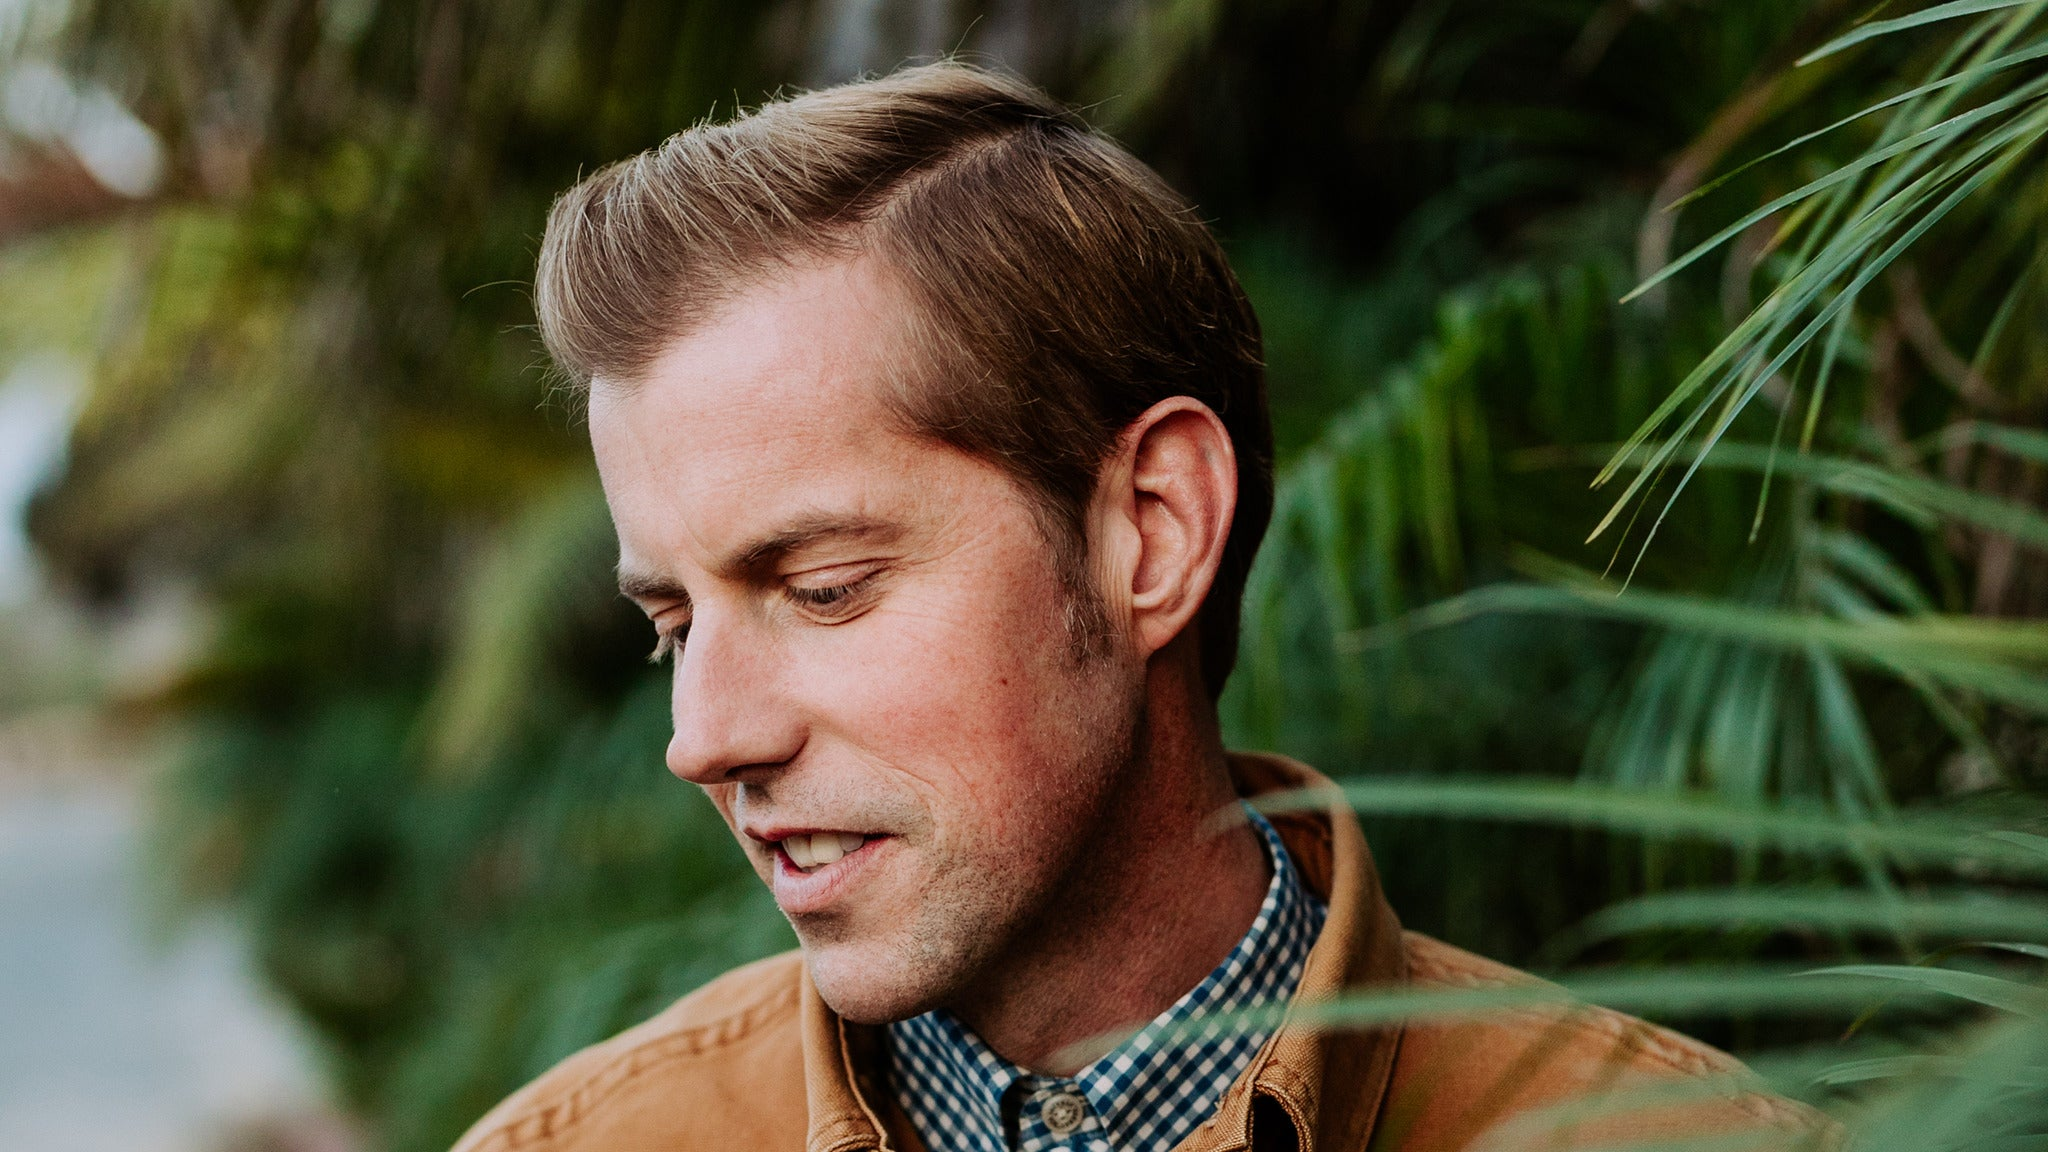 Andrew McMahon at Toads Place - CT